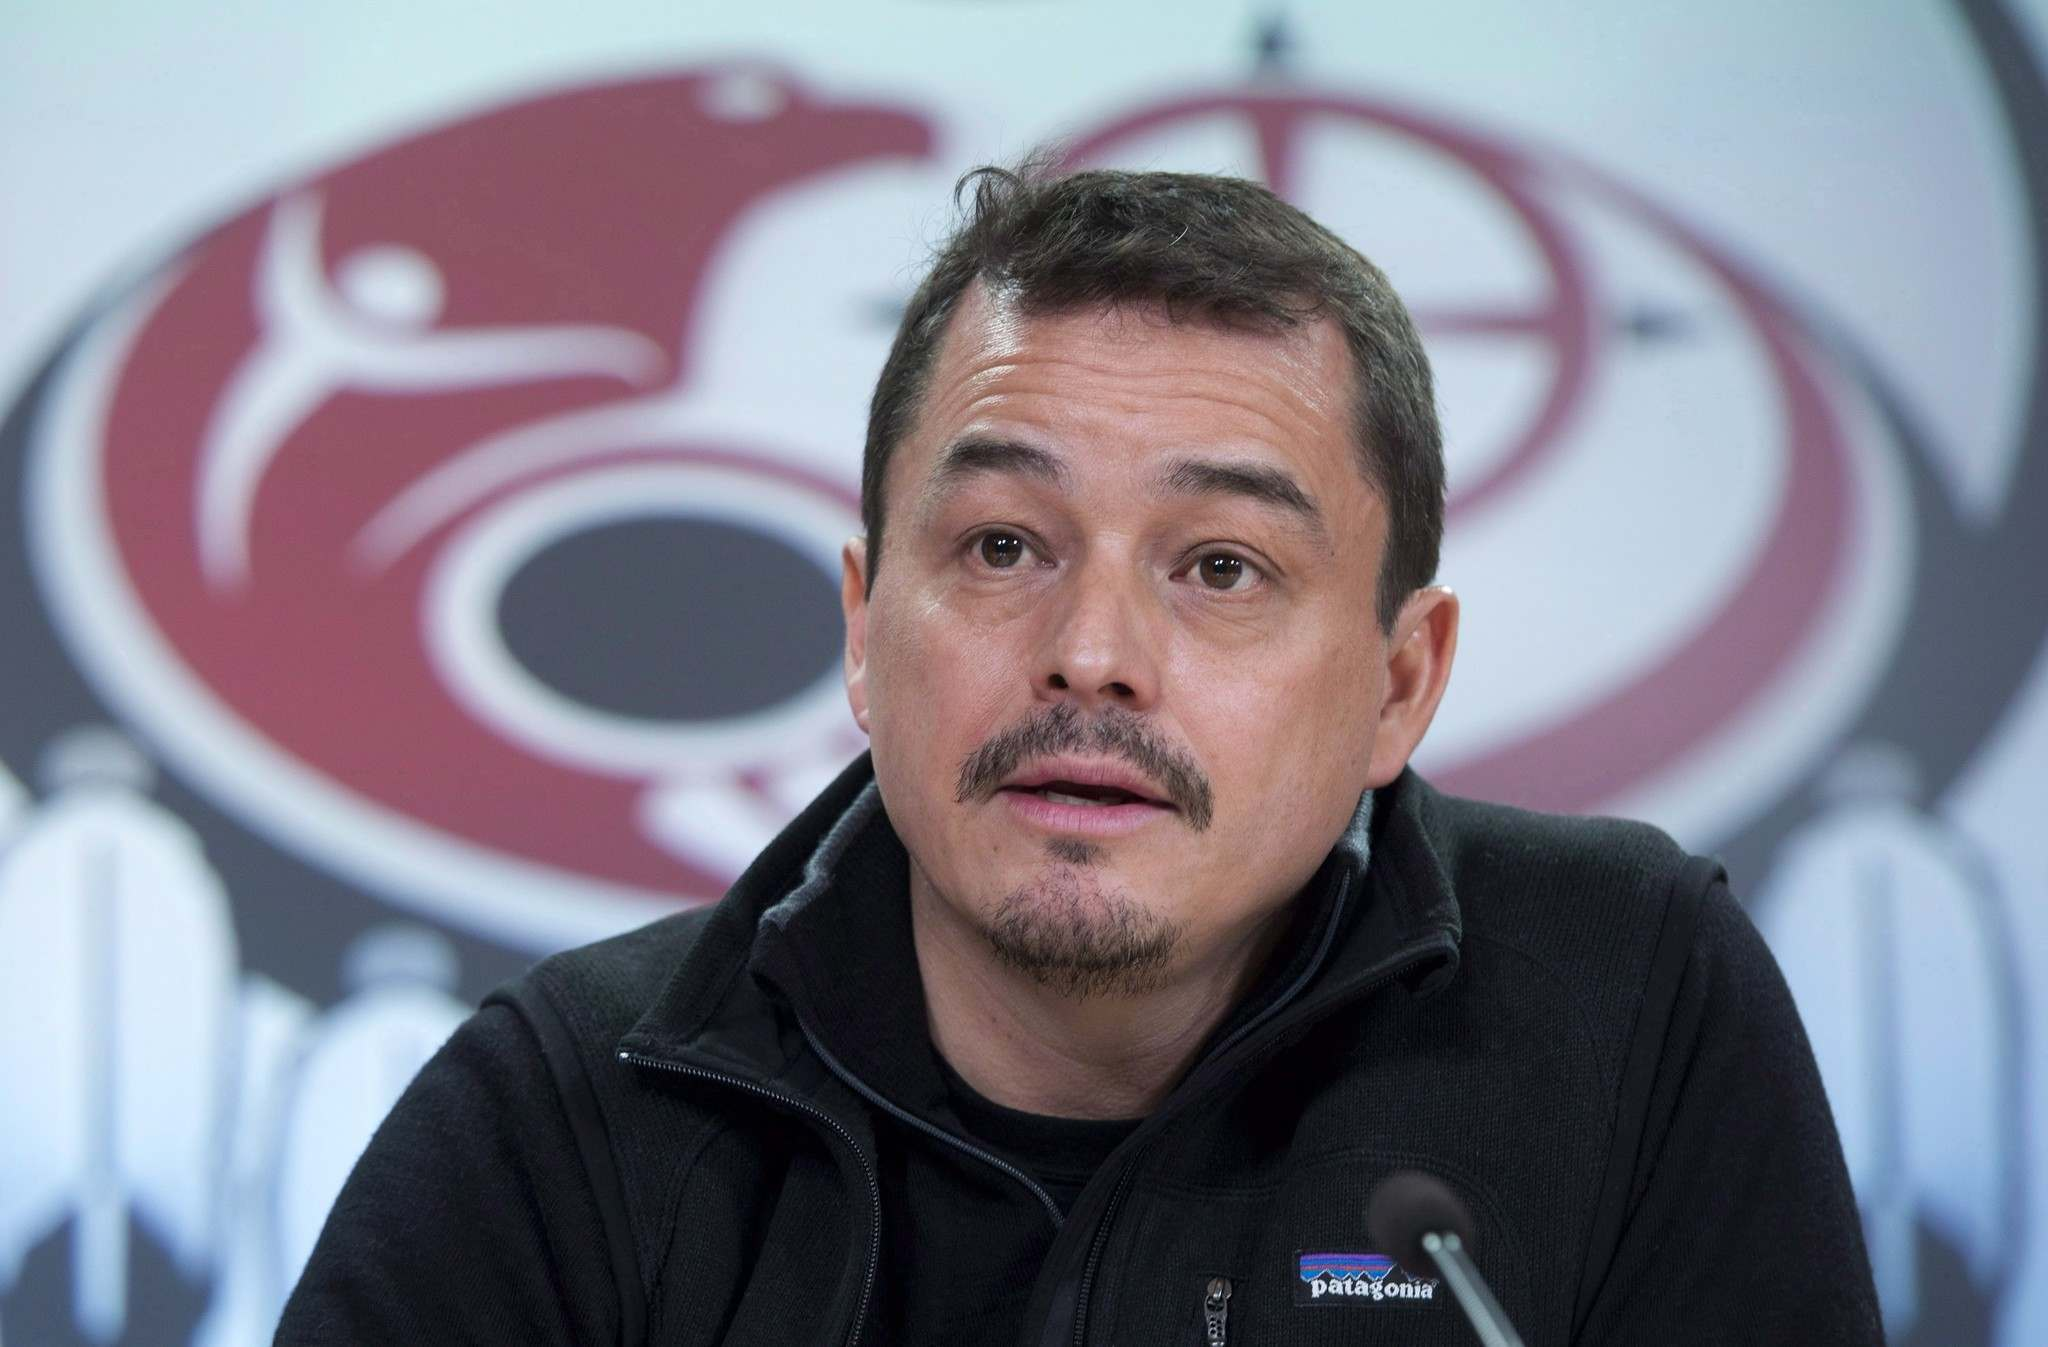 THE CANADIAN PRESS FILES/Adrian Wyld</p> In 2009, Bellegarde (supported mostly by Prairie chiefs) conceded to Shawn Atleo (supported primarily by B.C. and Ontario) after neither could obtain 60 per cent support after seven votes.